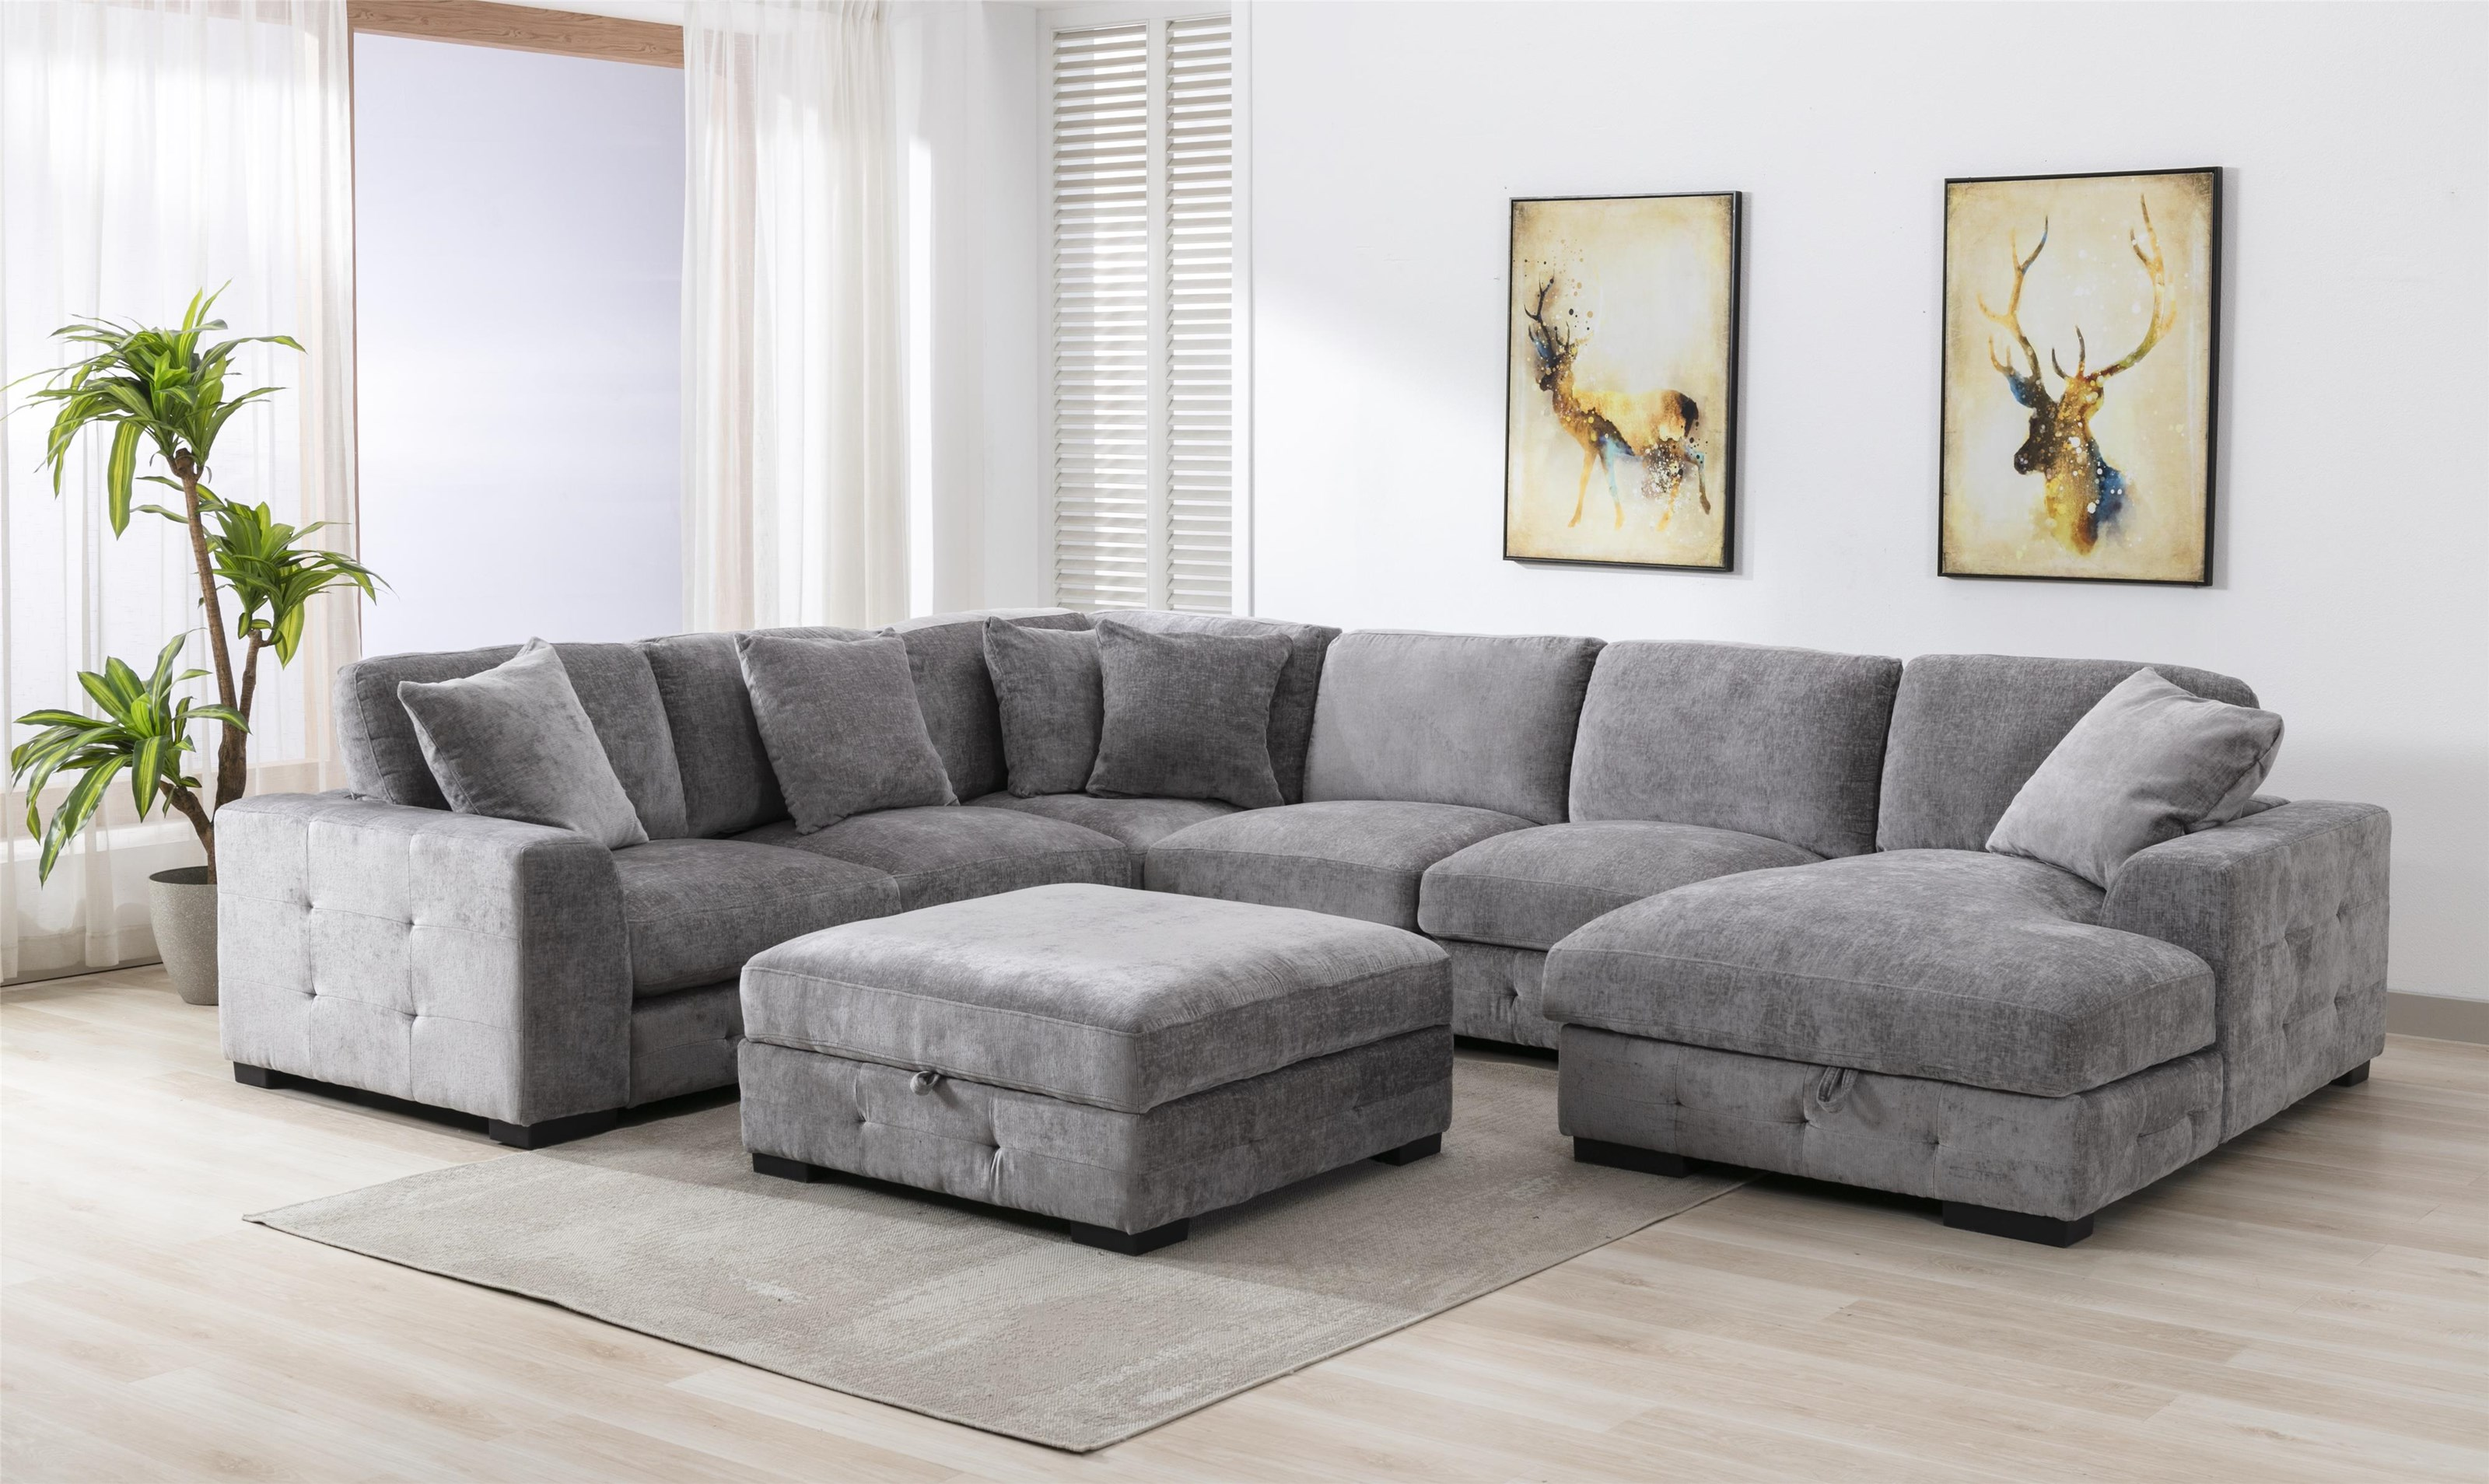 U23587 DOVE Four Piece Chaise sectional by Lifestyle at Furniture Fair - North Carolina